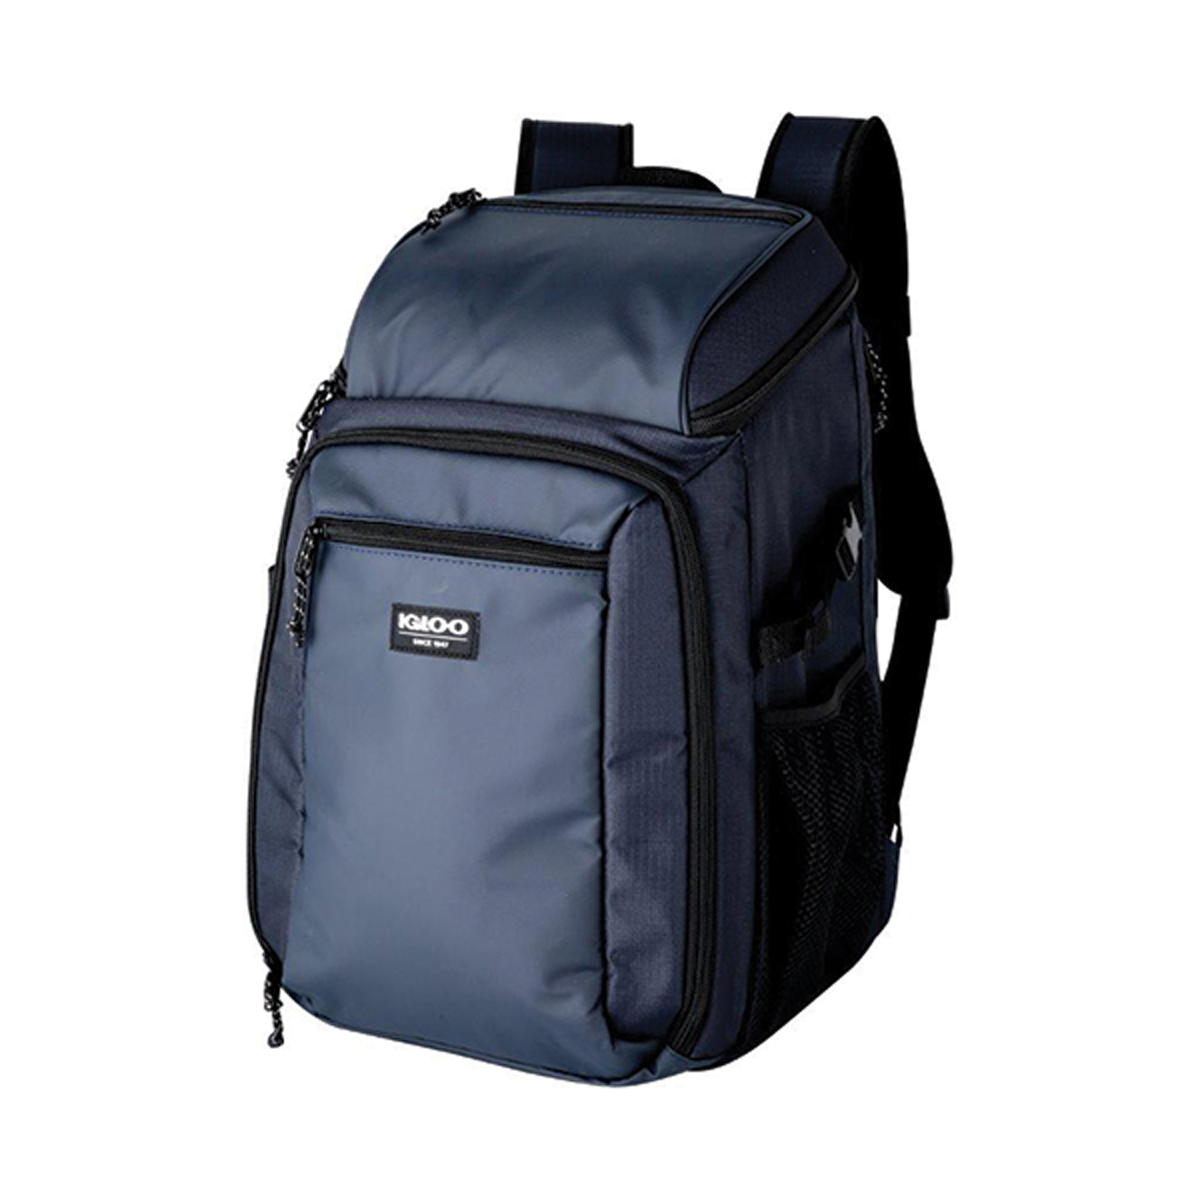 Outdoorsman Gizmo Backpack, Navy, swatch